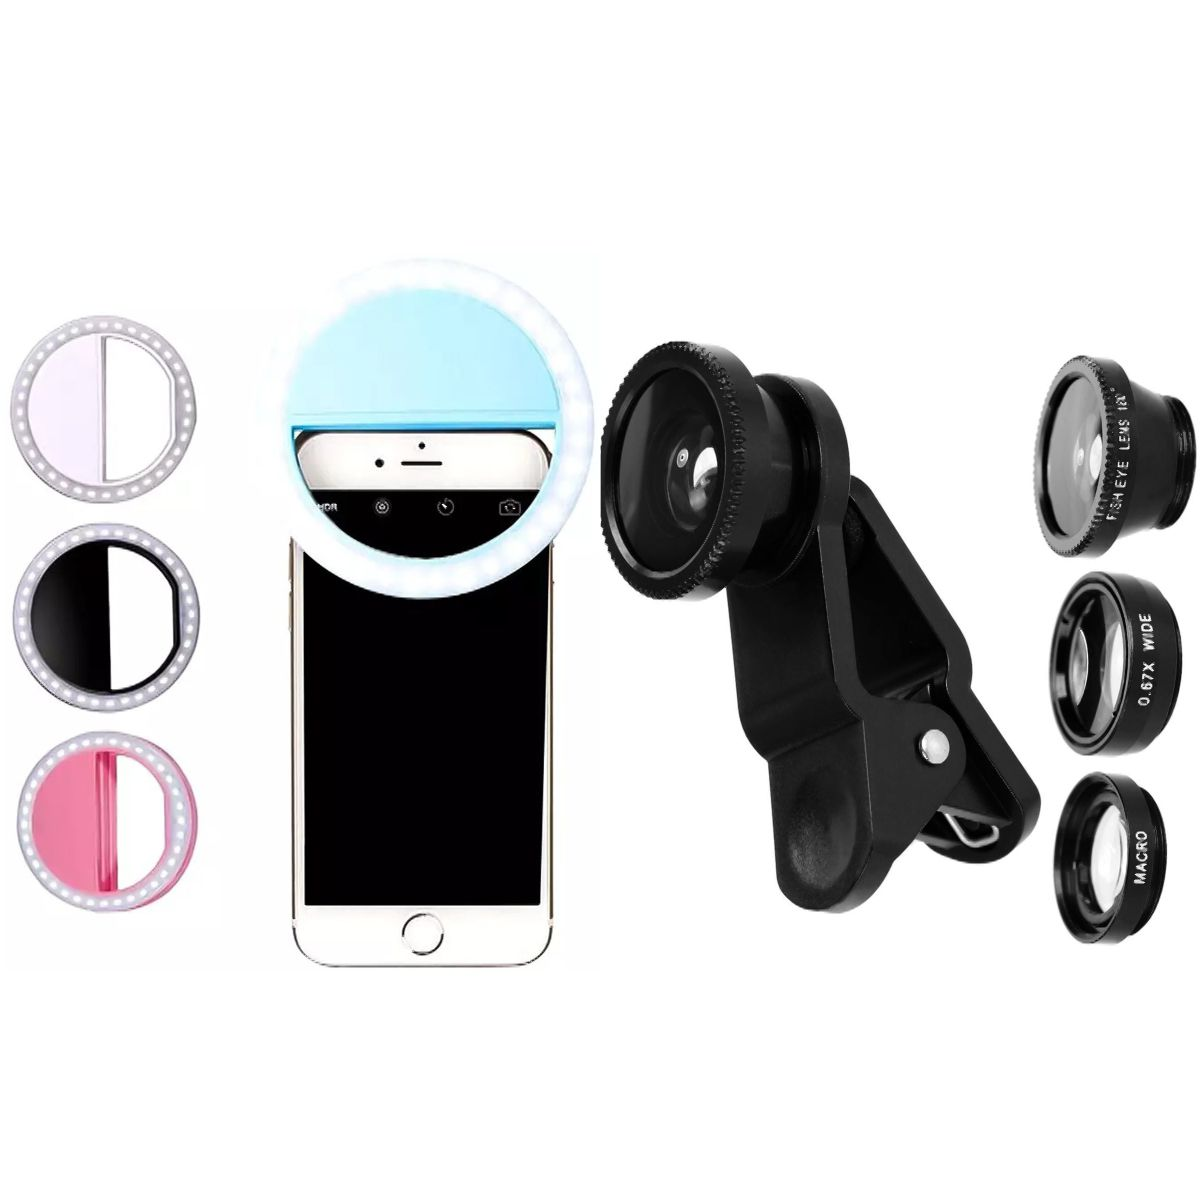 Conjunto de Lentes Fish Eye + Flash Portátil 16 Leds